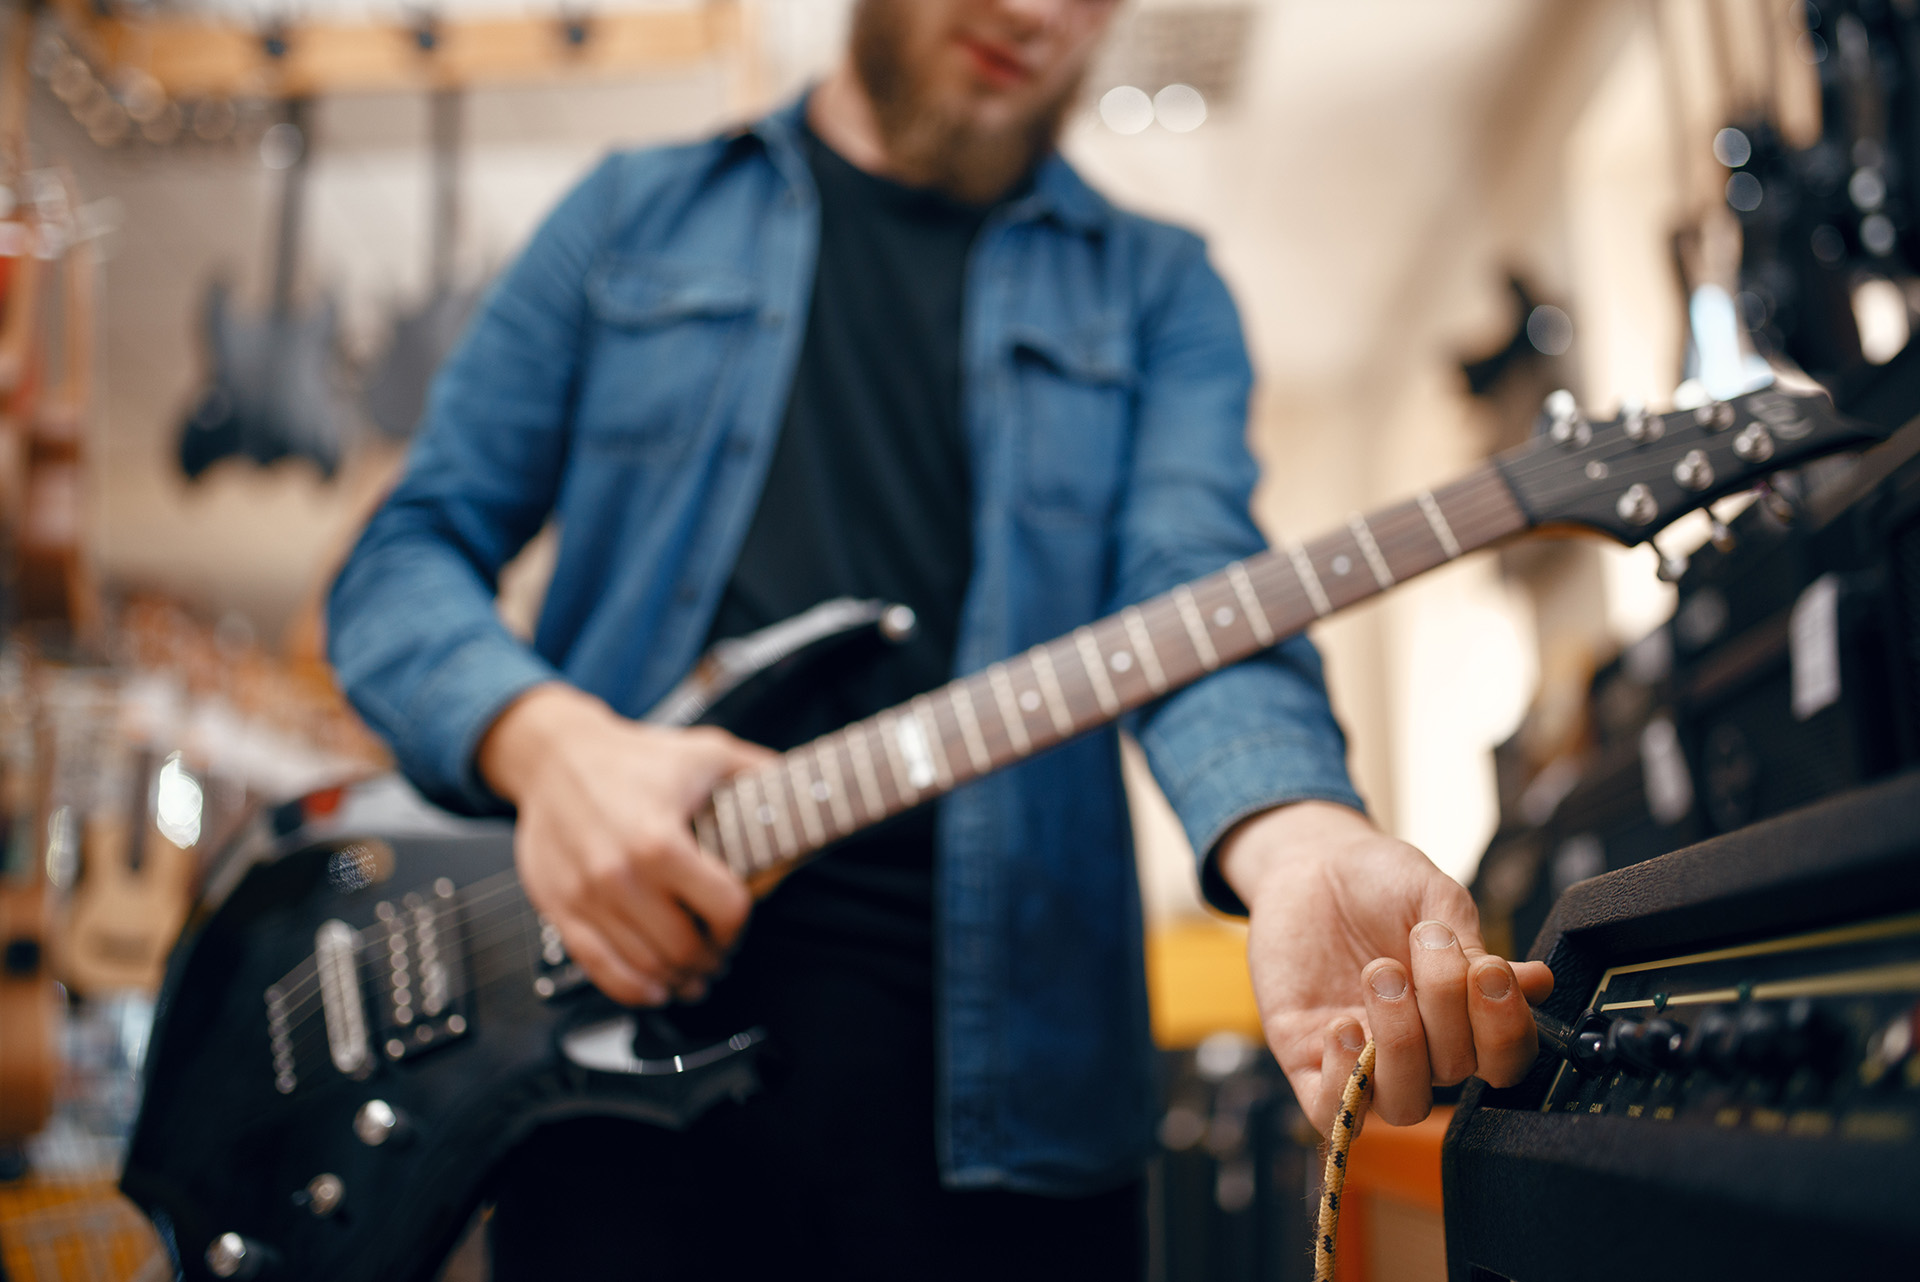 Male guitarist plays on electric guitar in music store. Assortment in musical instruments shop, musician buying equipment